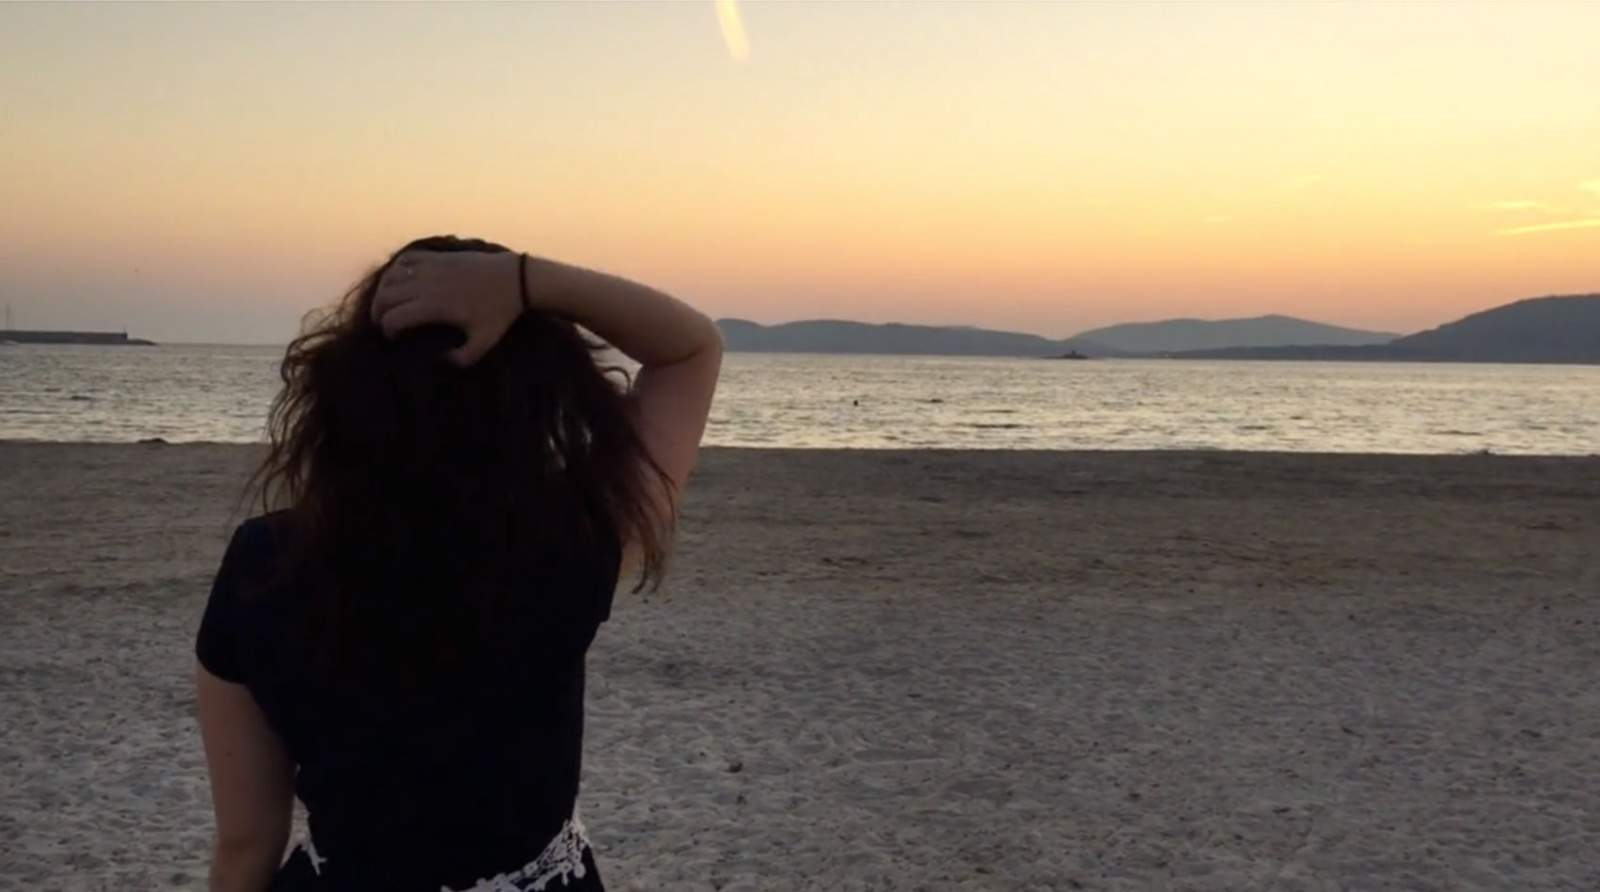 Didn't get away this summer? These videos let you vacation vicariously.